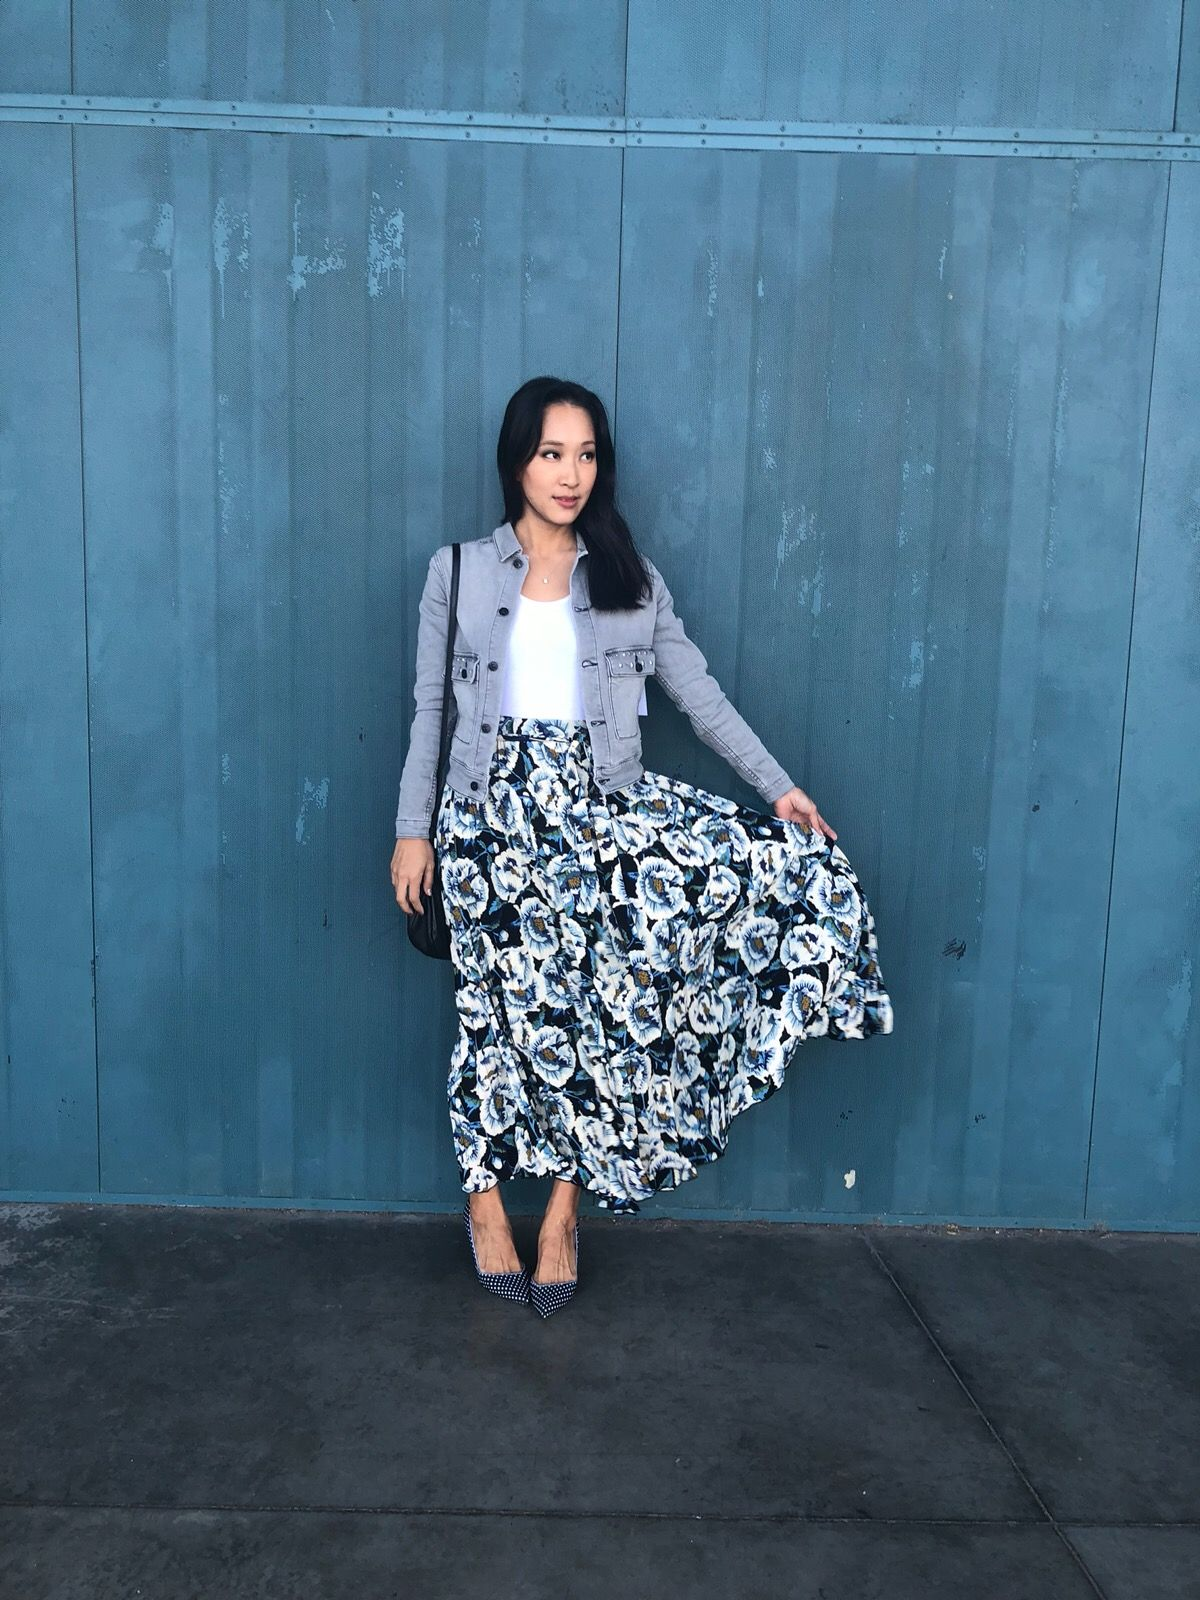 01f31037c1 Say hello to cooler weather in this breezy floral Deanne Skirt and denim  Kenny jacket! @lizypo knows how to go into the new season in style! #OOTD